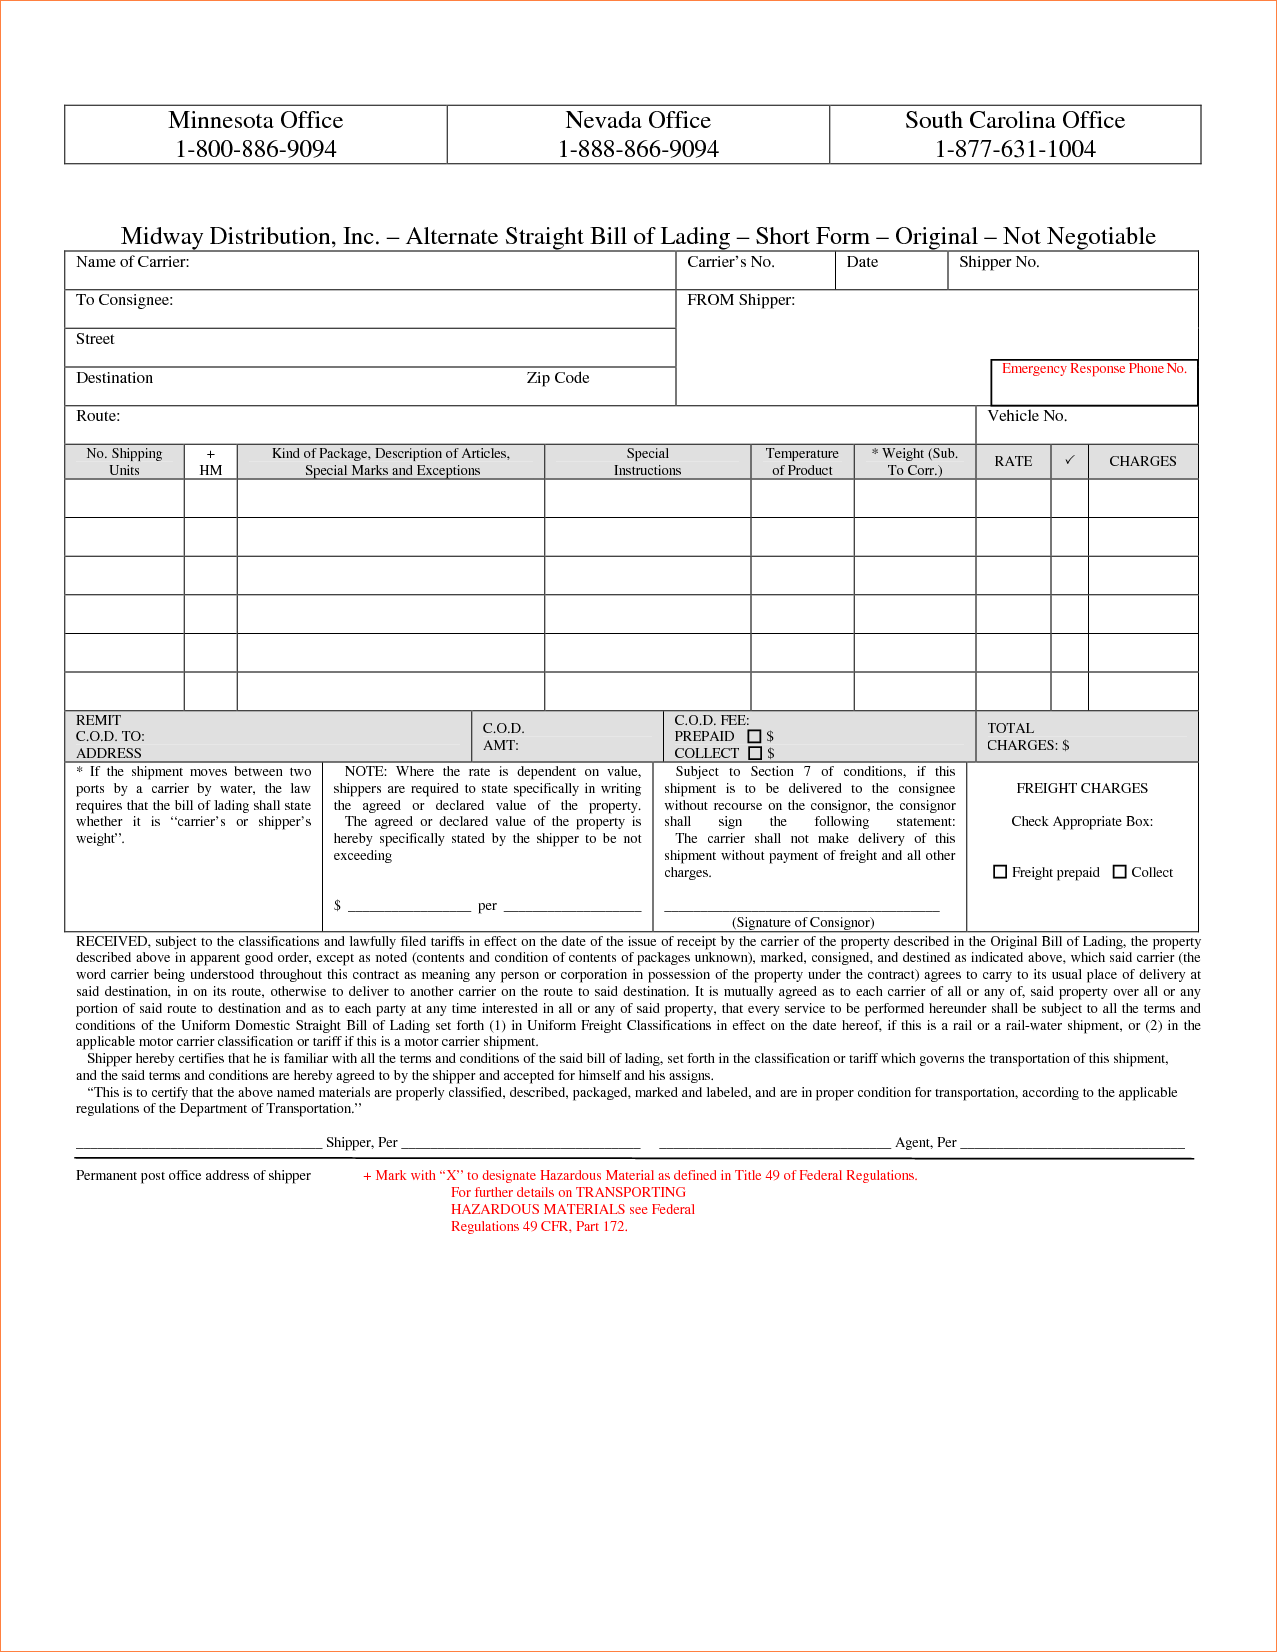 Straight Bill Of Lading Short form Template and 3 Straight Bill Of Lading Short formreport Template Document